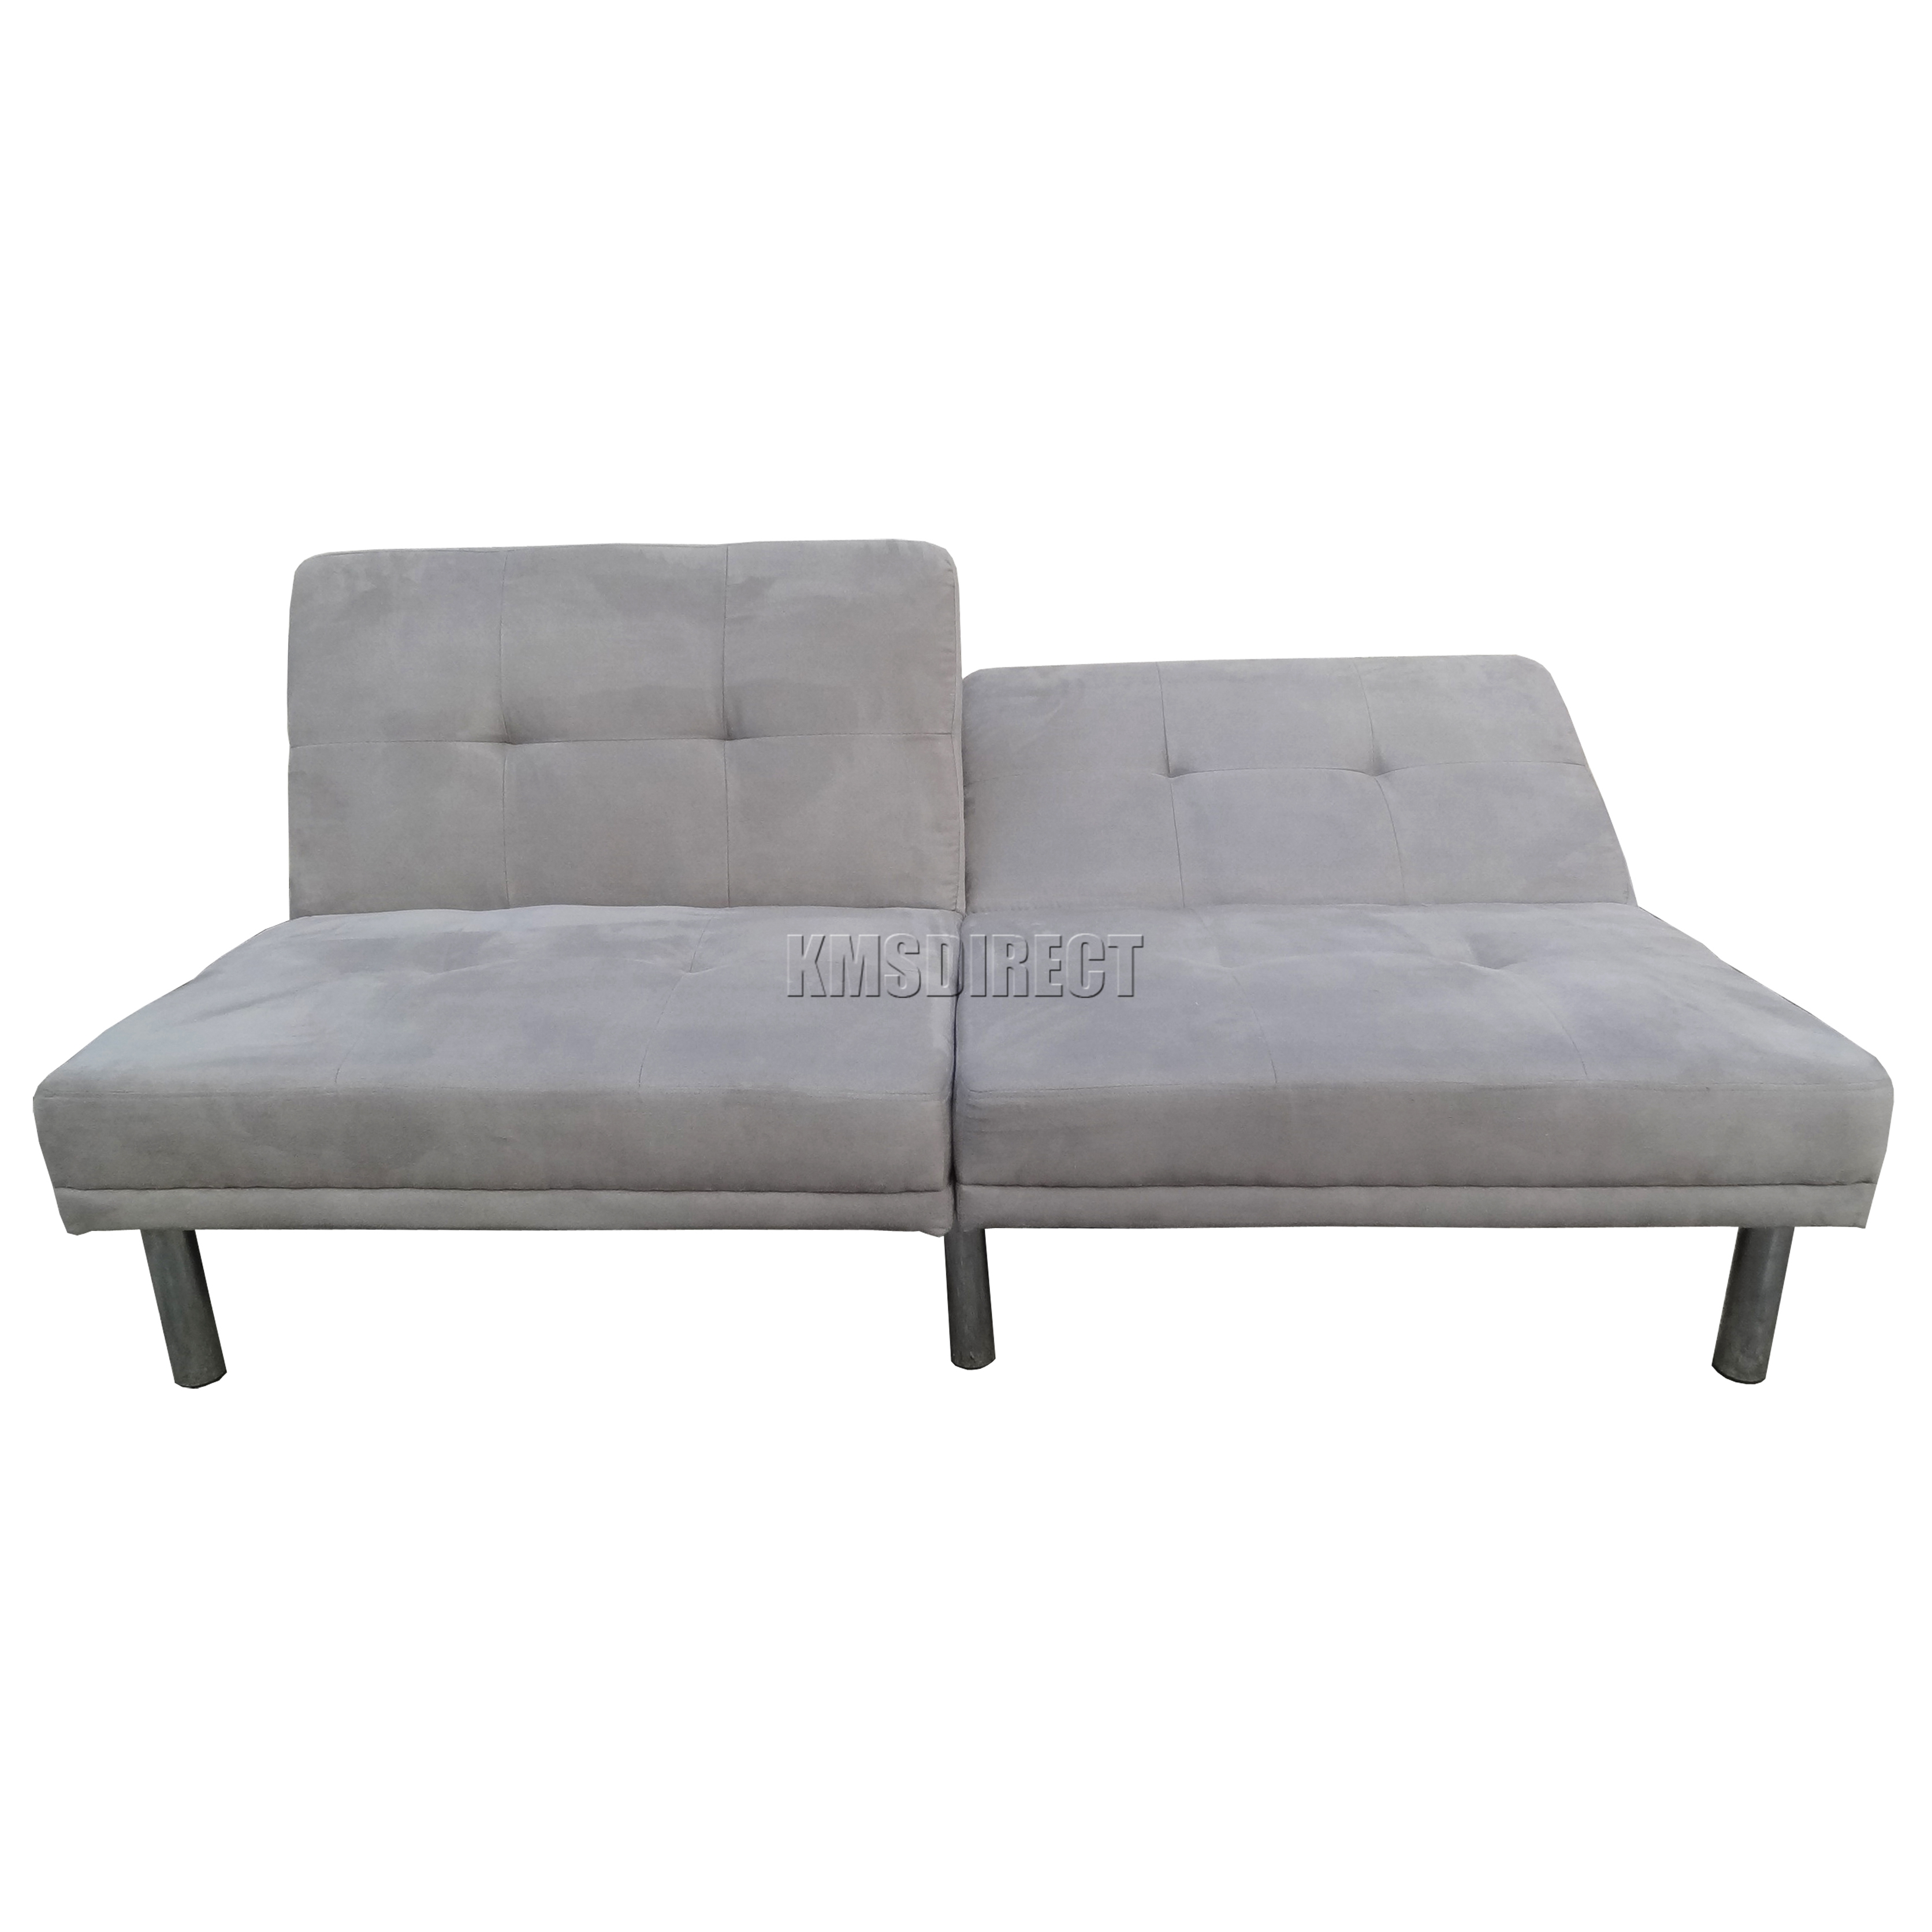 FoxHunter Fabric Faux Suede Sofa Bed Recliner 2 Seater Modern